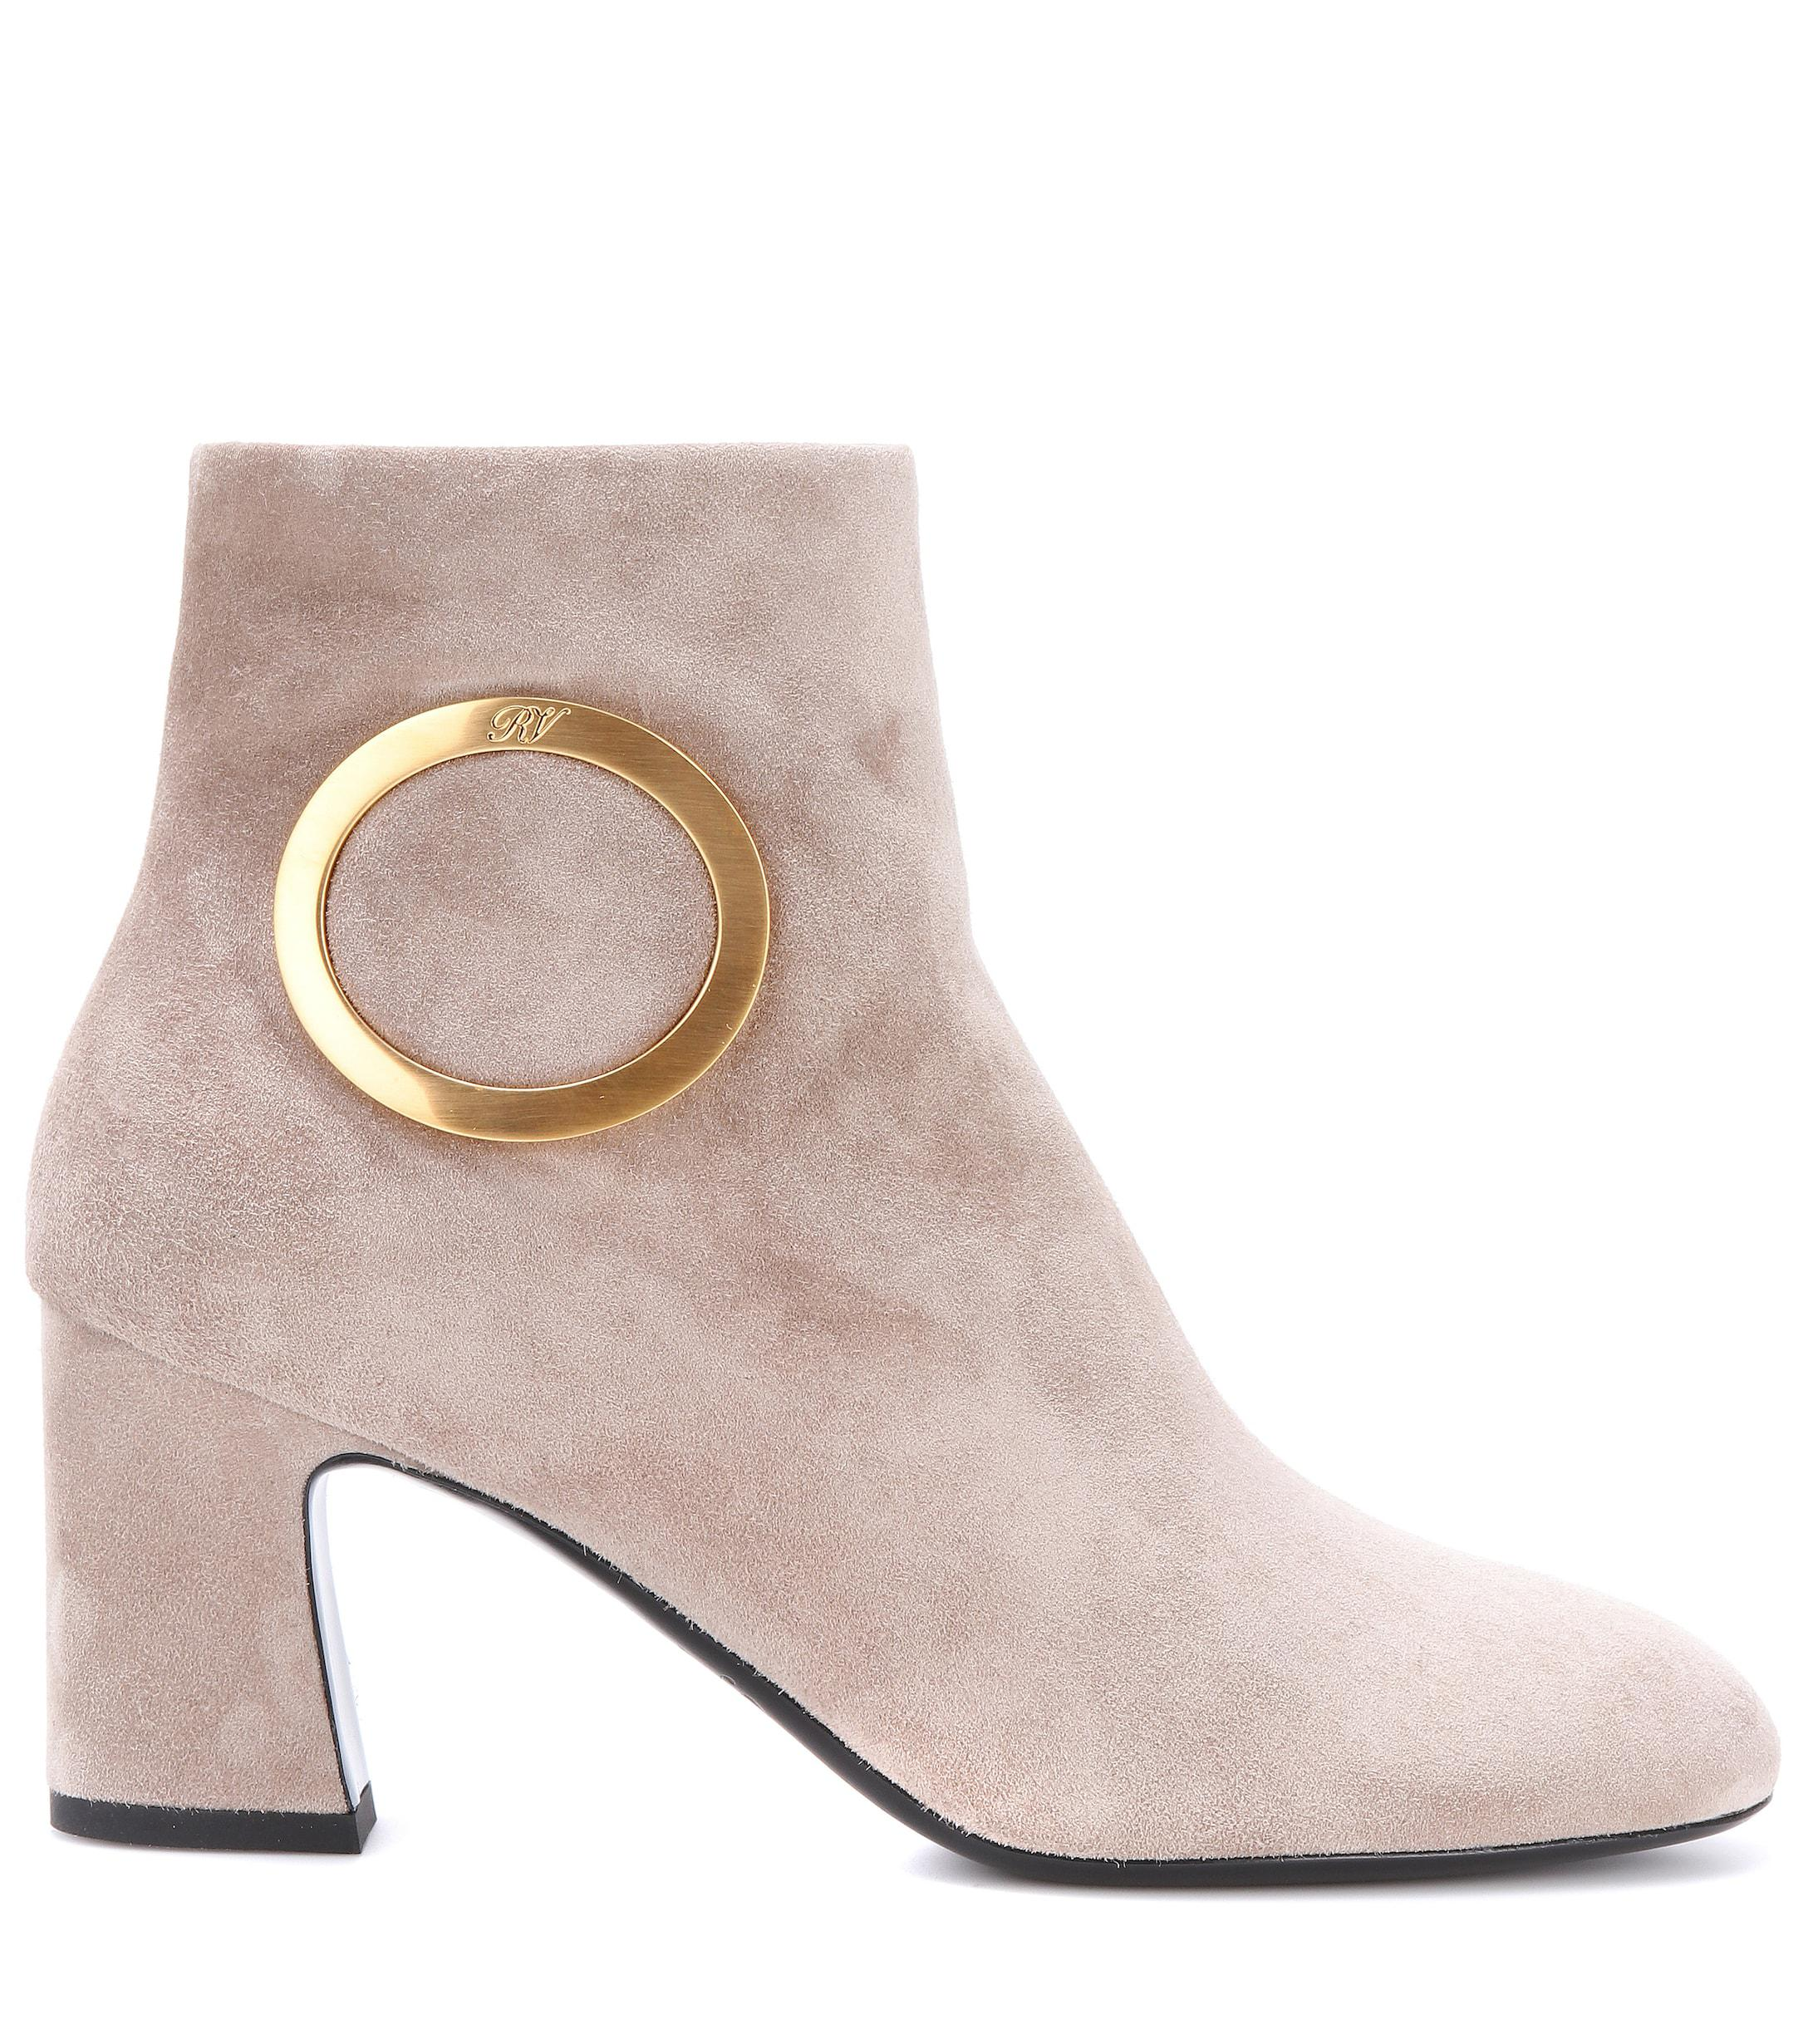 Roger Vivier Chunky Trompette Suede Ankle Boots in Grey (Grey)